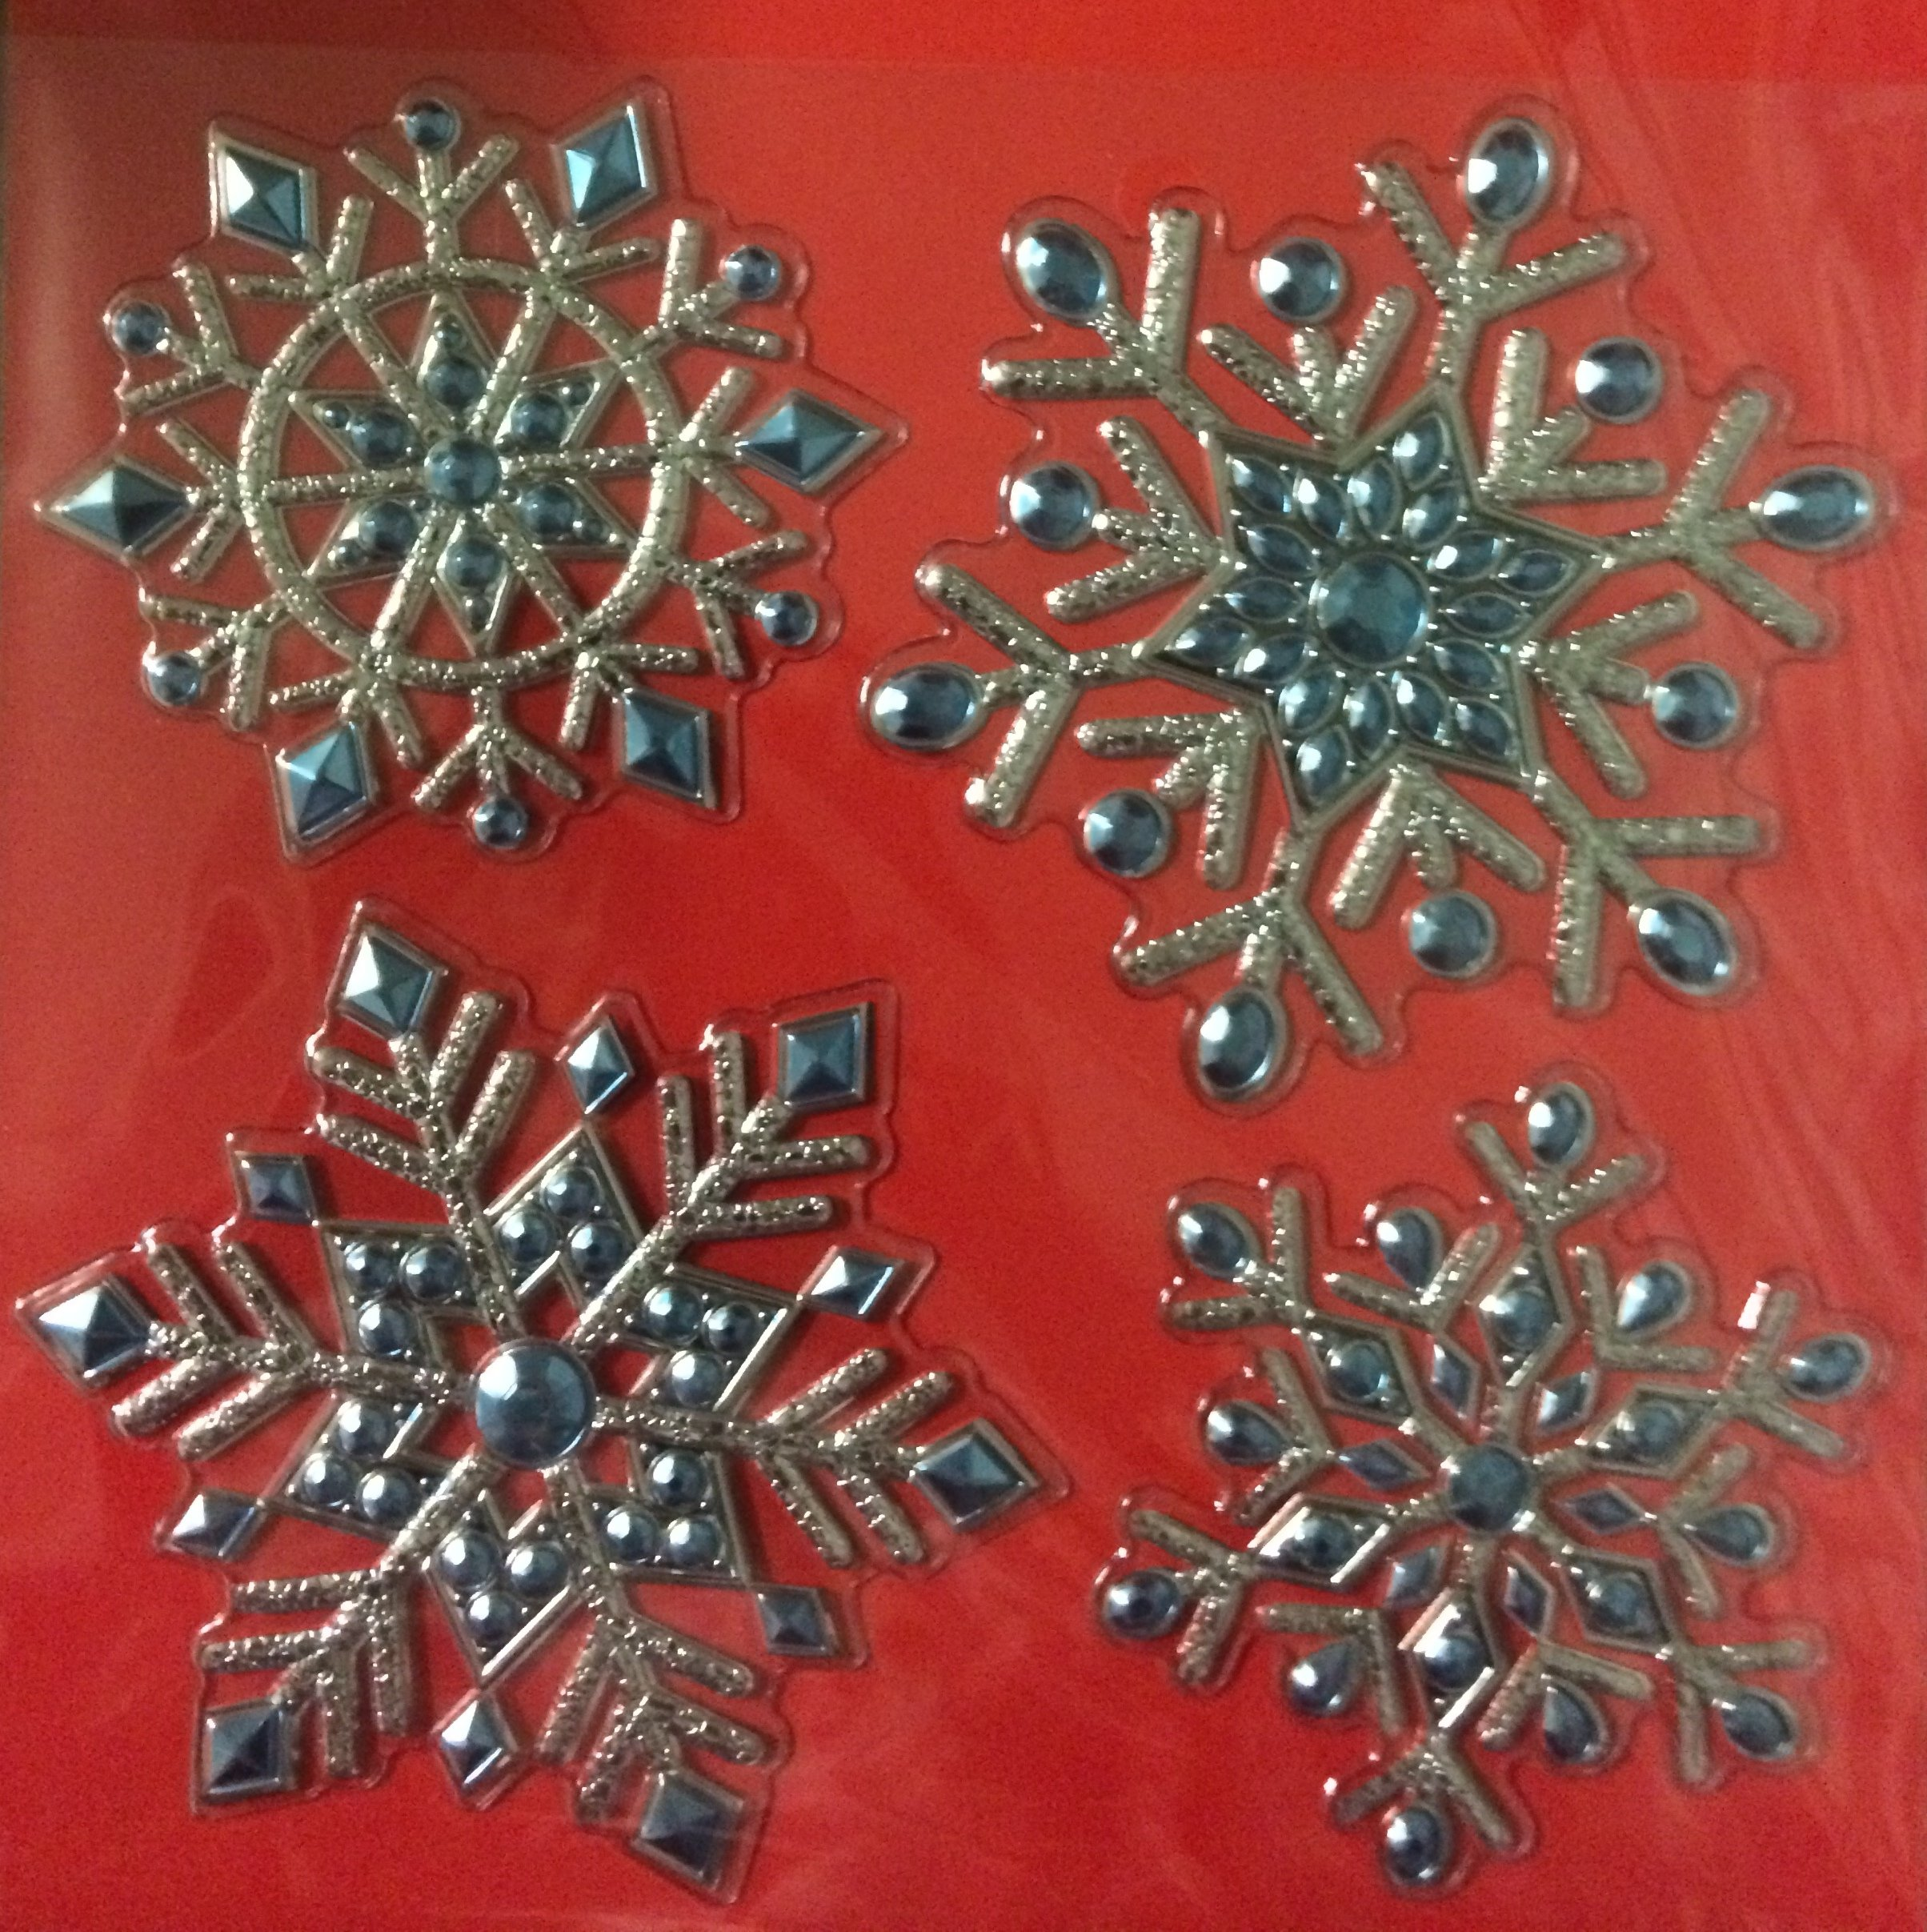 4 Deluxe Christmas Snowflake Stickers - Holiday Decorations - Silver and Blue